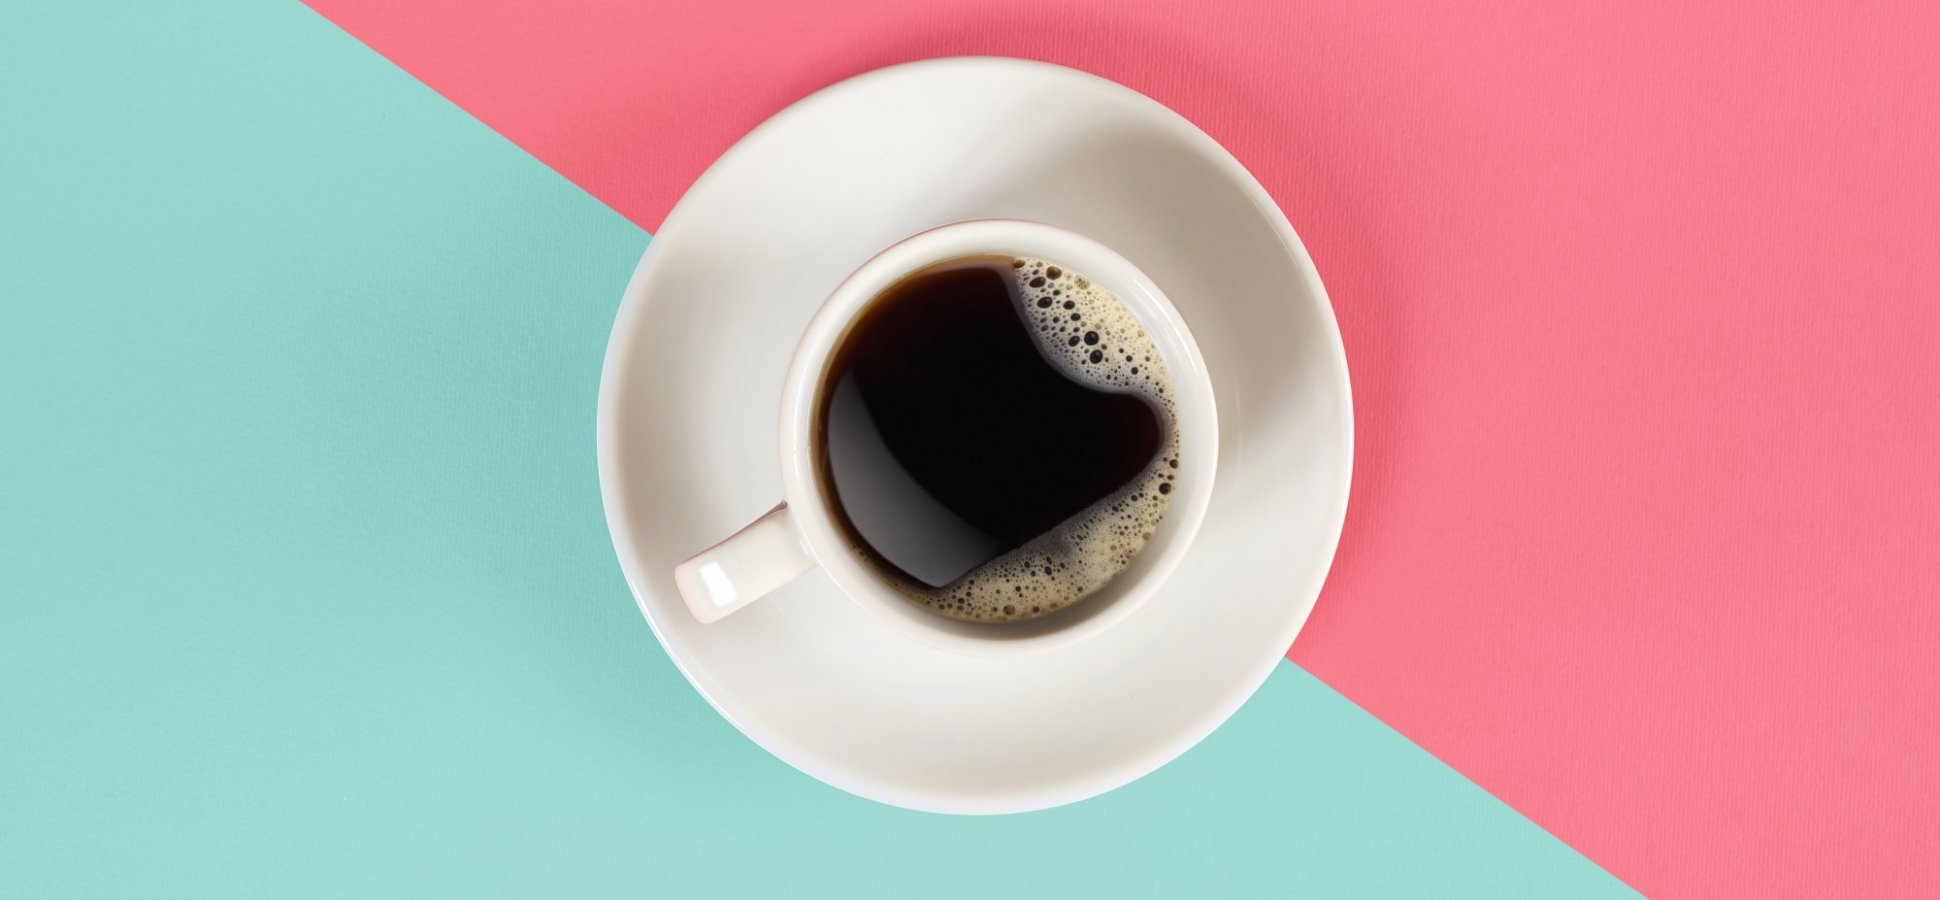 Scientists Just Discovered That Drinking Coffee Does Something Absolutely Amazing to Your Body